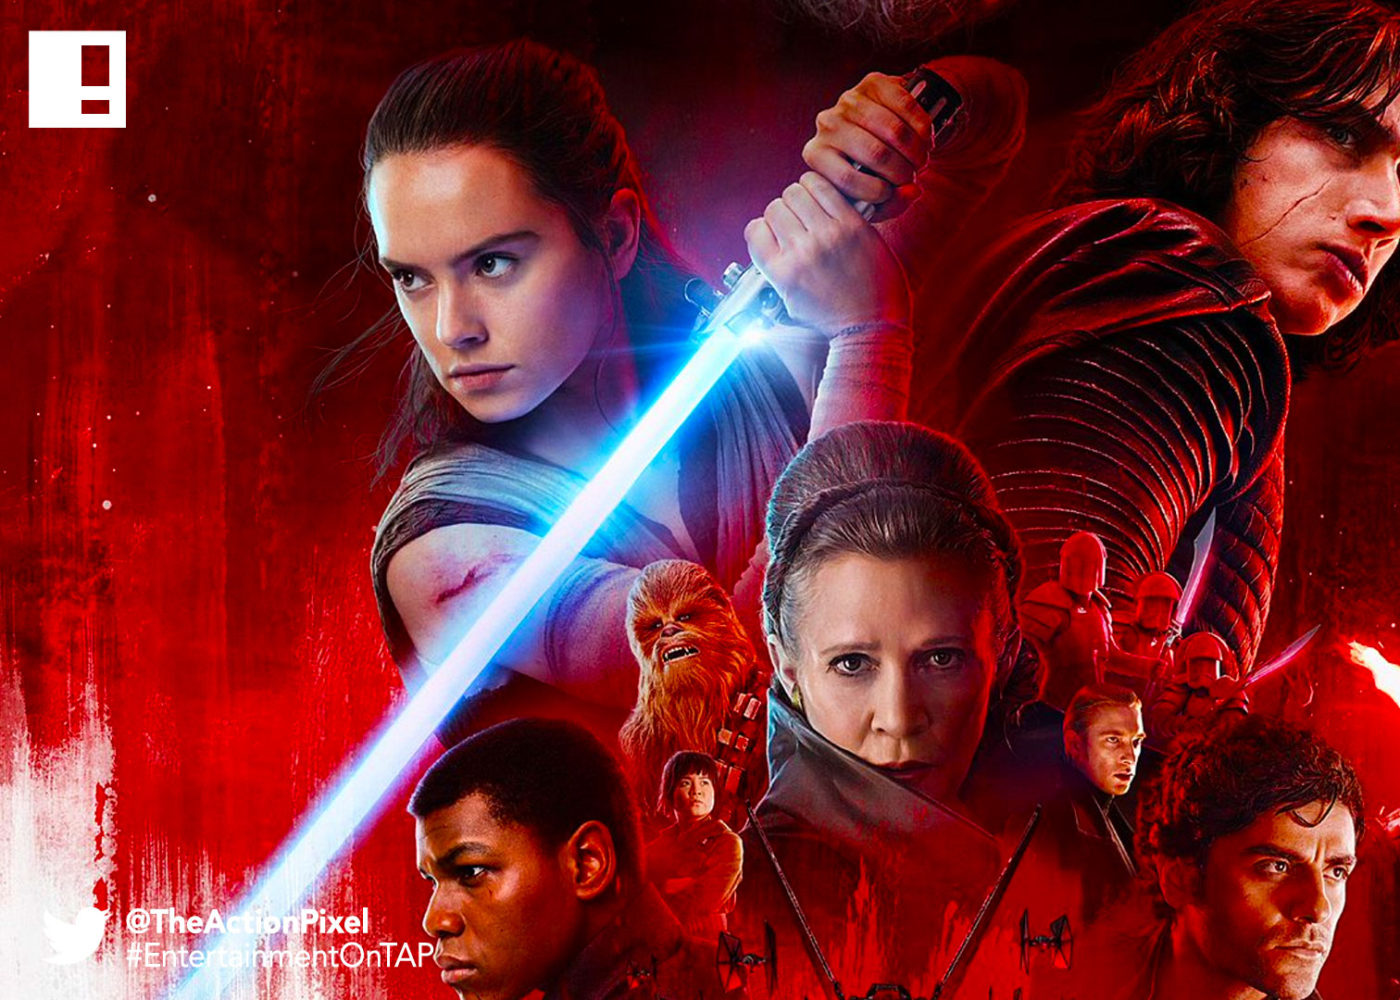 the last jedi, star wars, star wars: the last jedi, mark hamill, luke skywalker, princess leia,carrie fisher, rey,the action pixel, entertainment on tap,kylo ren, photographs,image,poster